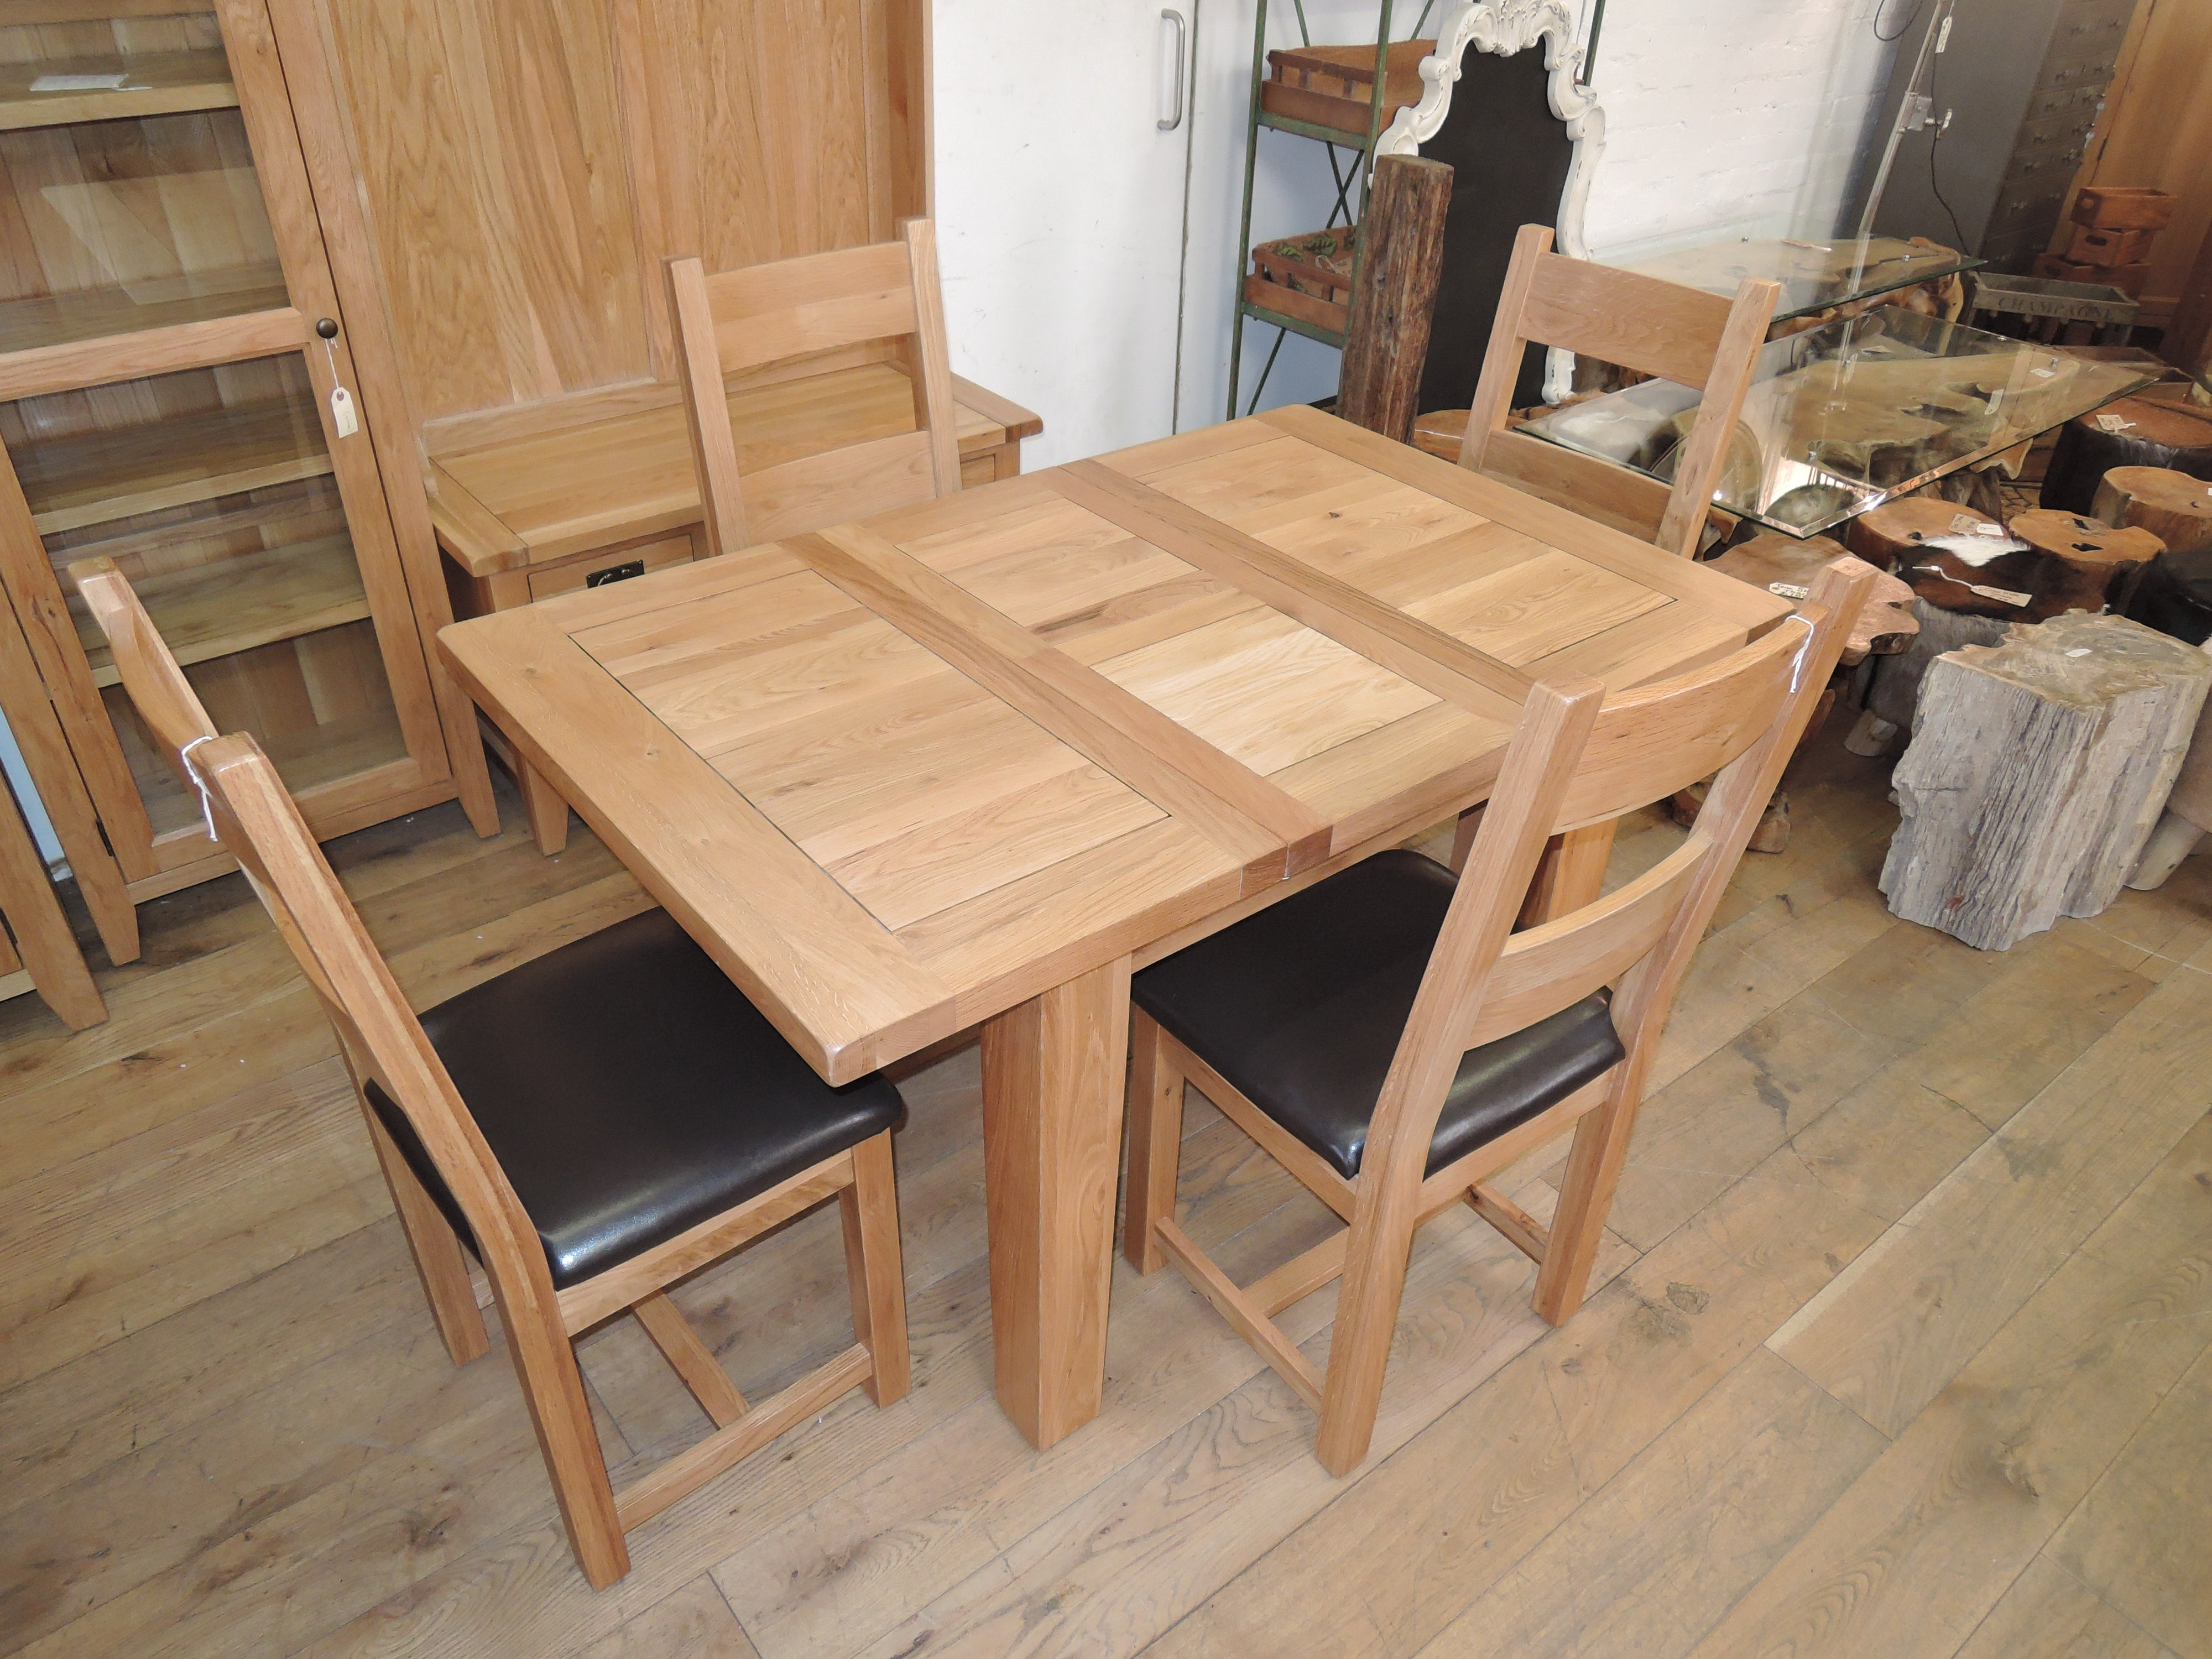 Deluxe Solid Oak Extending Dining Table 110cm To 140cm 4 Oak And